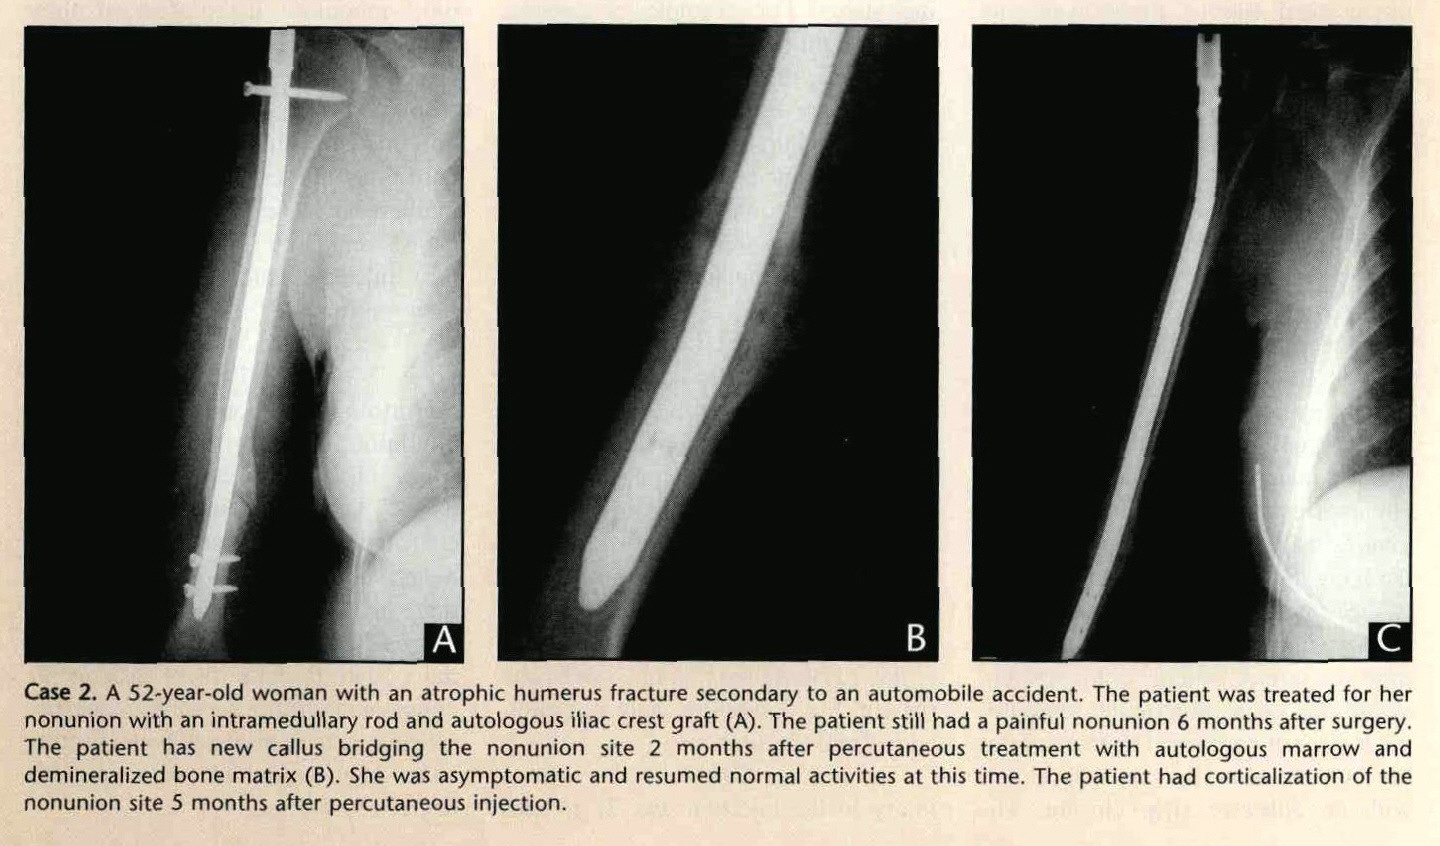 Case 2. A 52-year-old woman with an atrophic humerus fracture secondary to an automobile accident. The patient was treated for her nonunion with an intramedullary rod and autologous iliac crest graft (A). The patient still had a painful nonunion 6 months after surgery. The patient has new callus bridging the nonunion site 2 months after percutaneous treatment with autologous marrow and demineralized bone matrix (B). She was asymptomatic and resumed normal activities at this time. The patient had corticalization of the nonunion site 5 months after percutaneous injection.